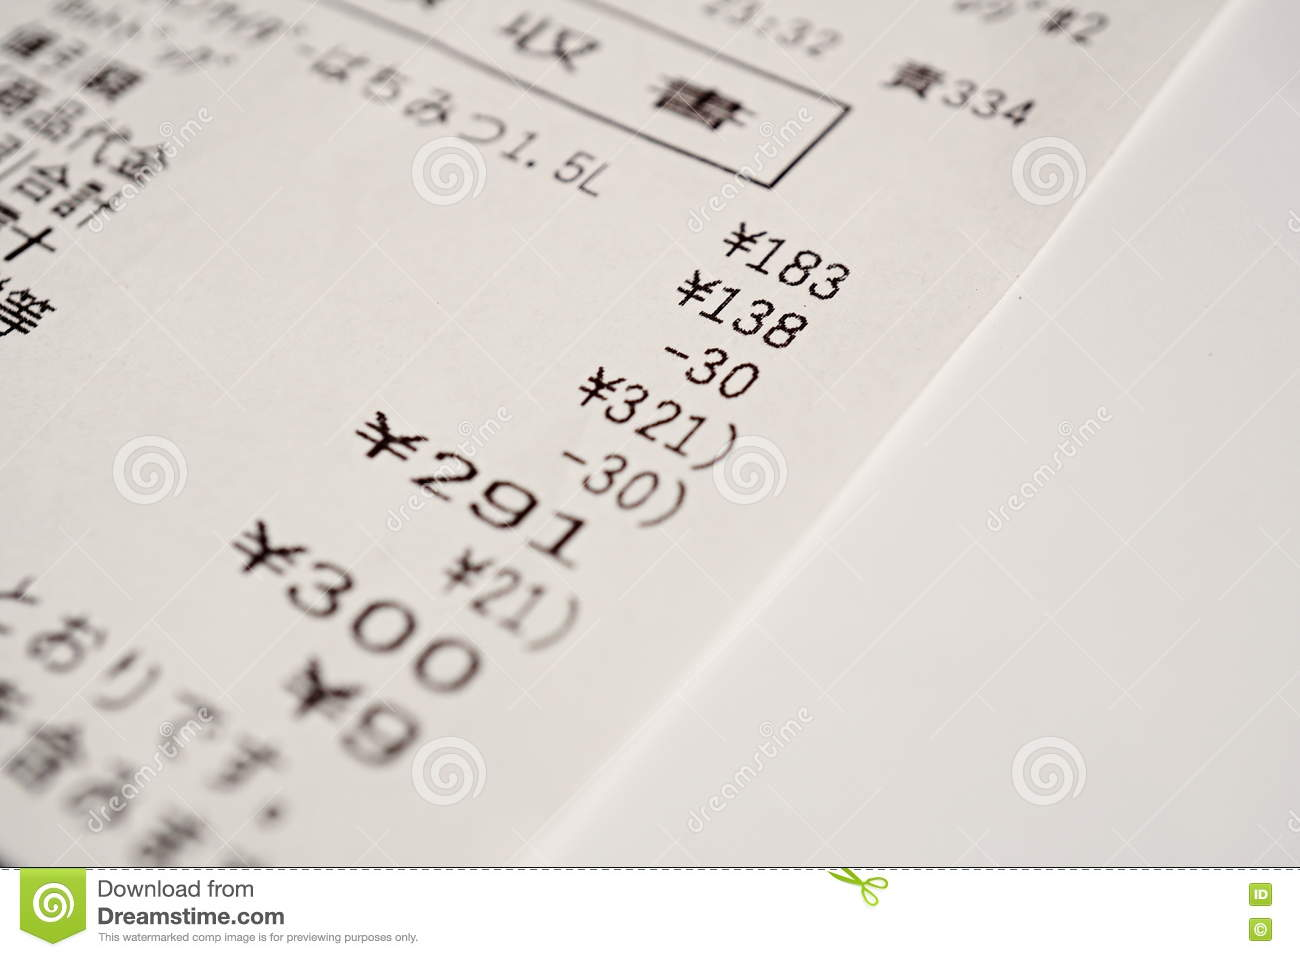 Sales Receipt Stock Image | CartoonDealer.com #2445493